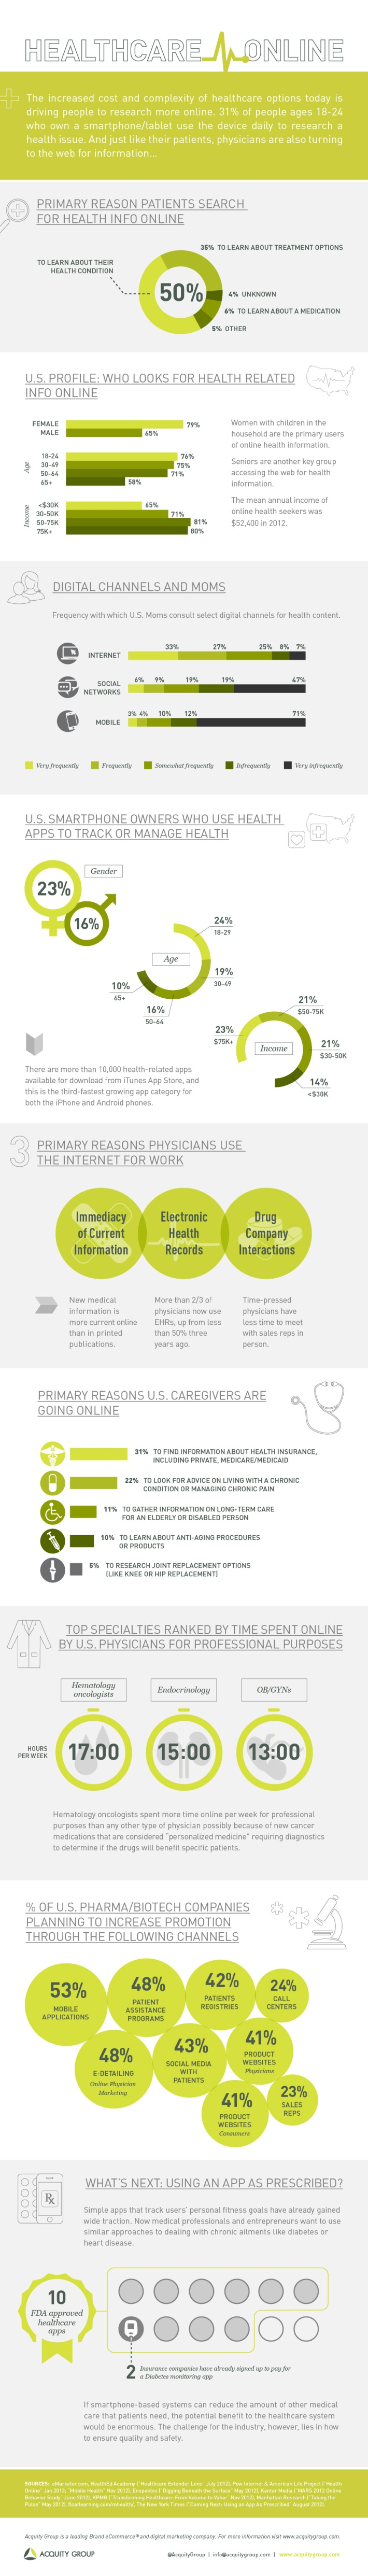 AG_healthcare-infographic-04